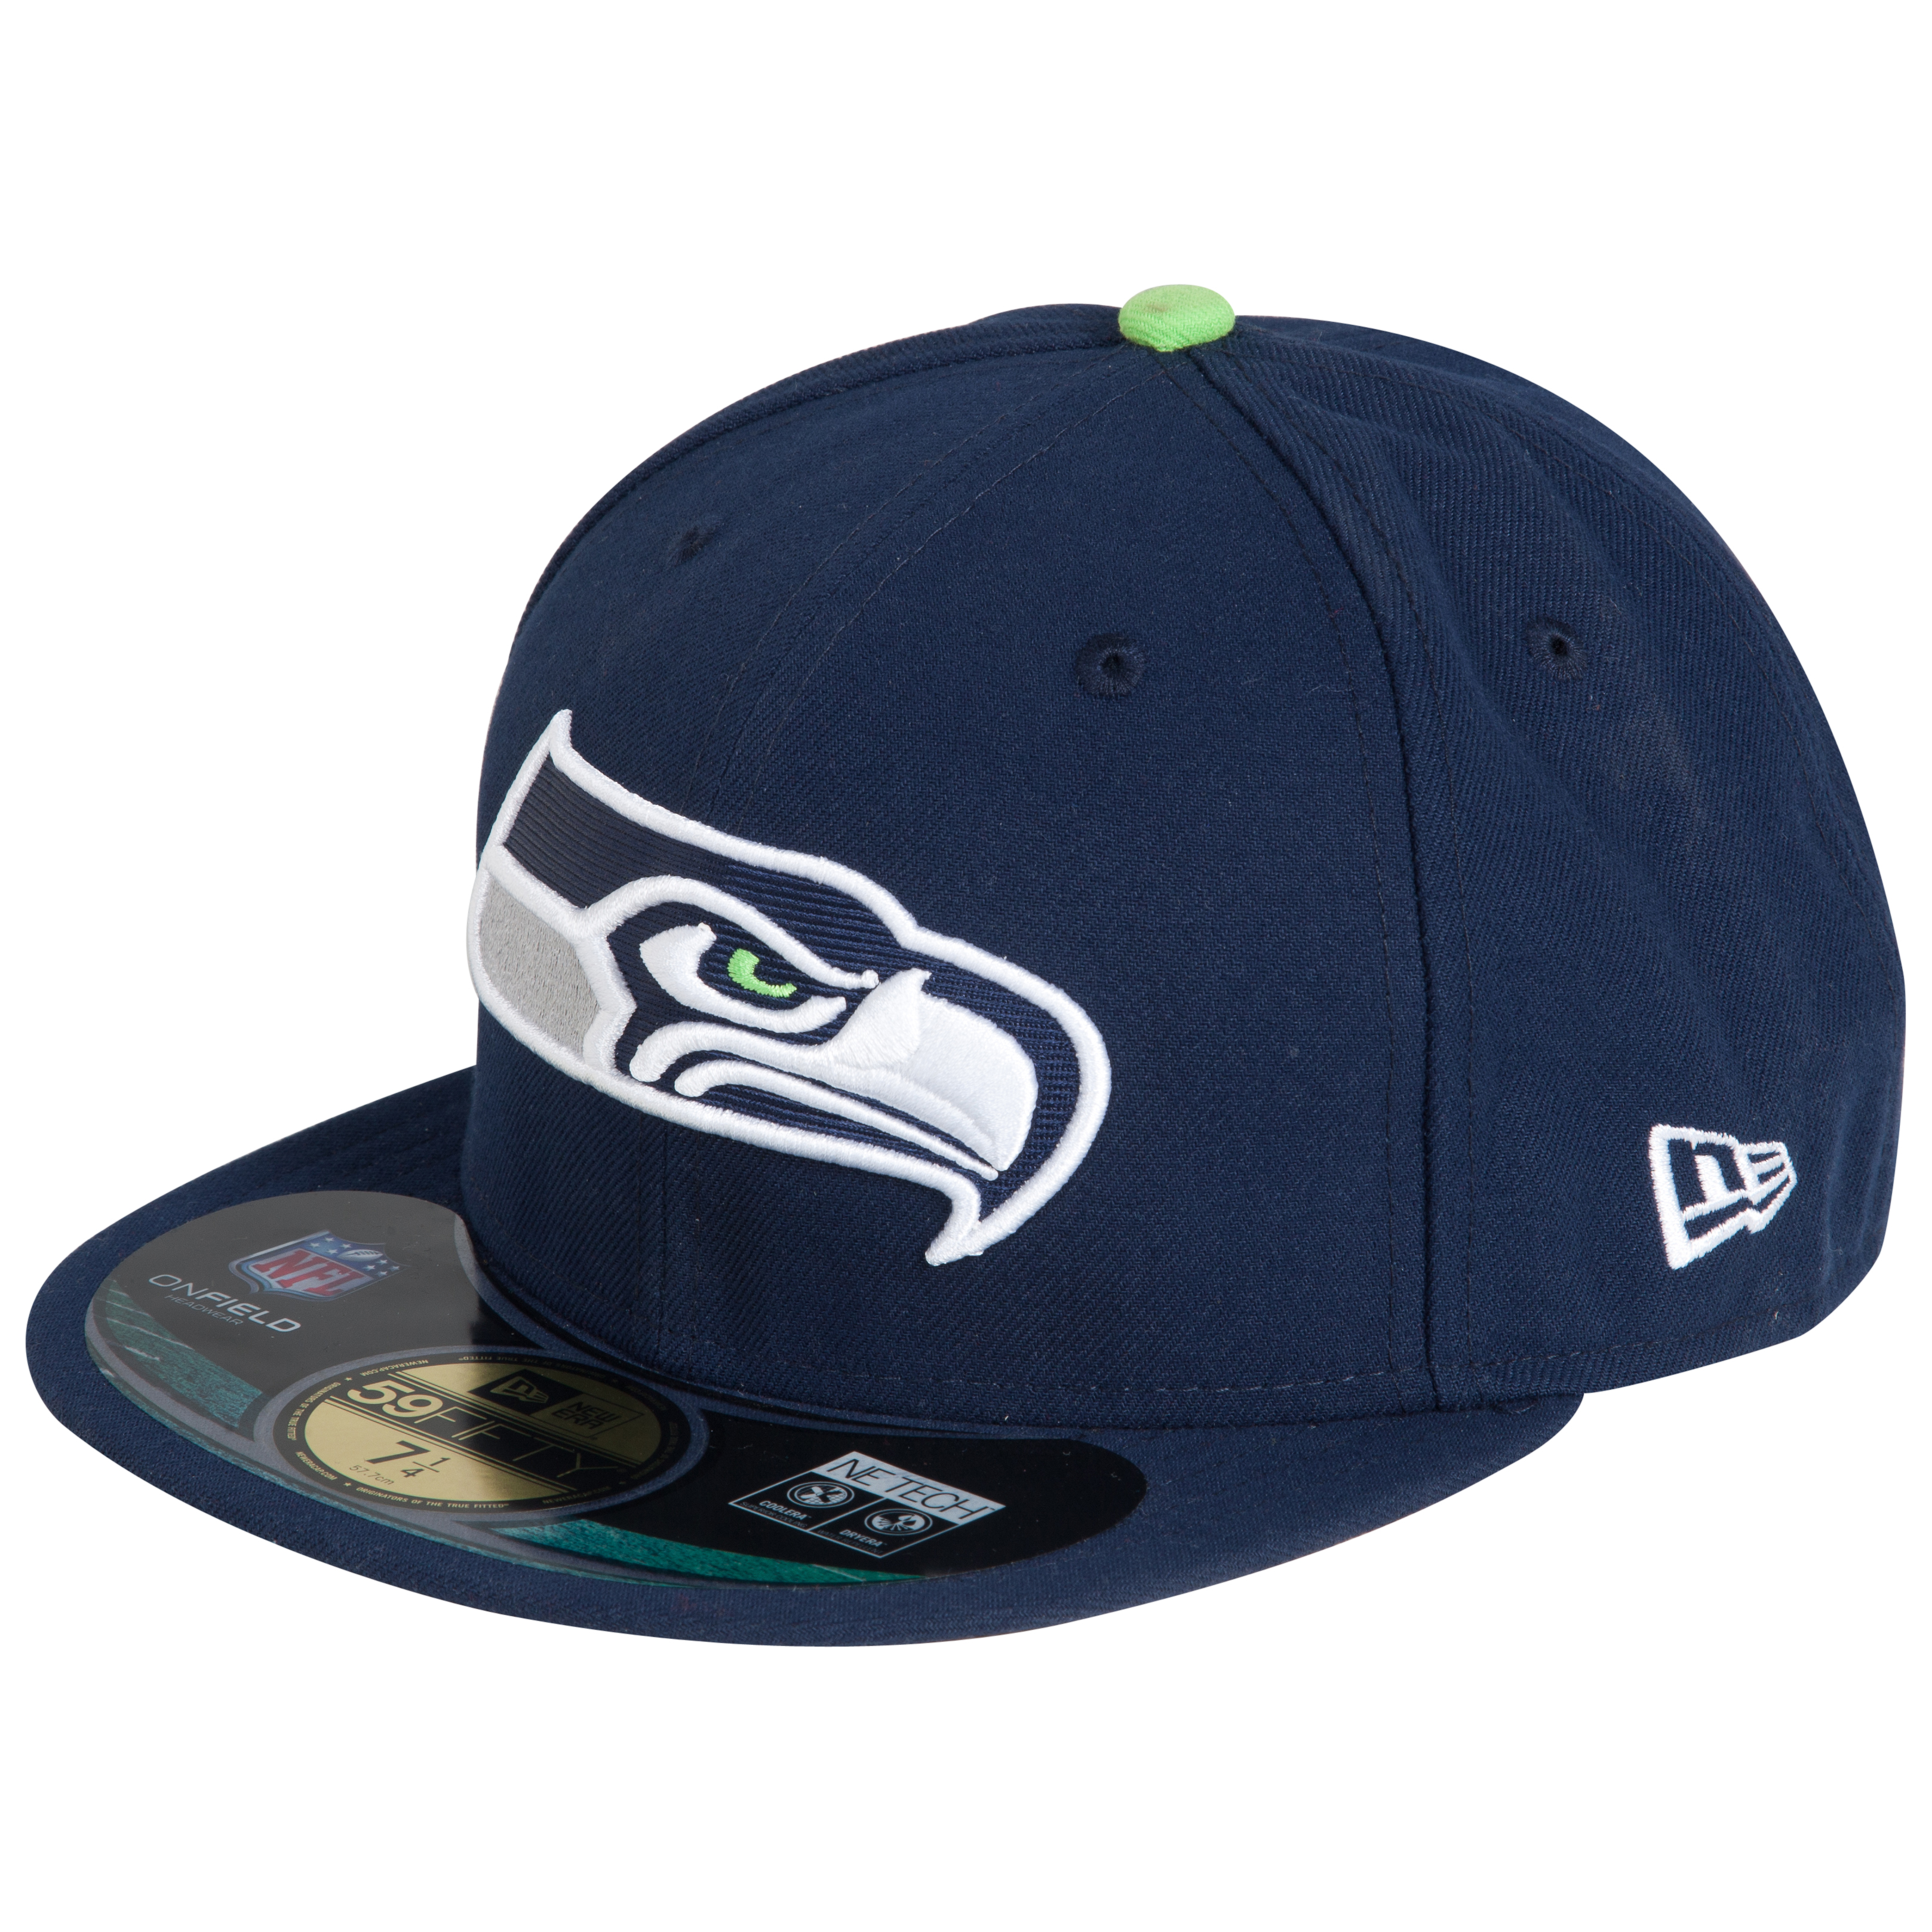 Seattle Seahawks New Era 59FIFTY Authentic On Field Fitted Cap